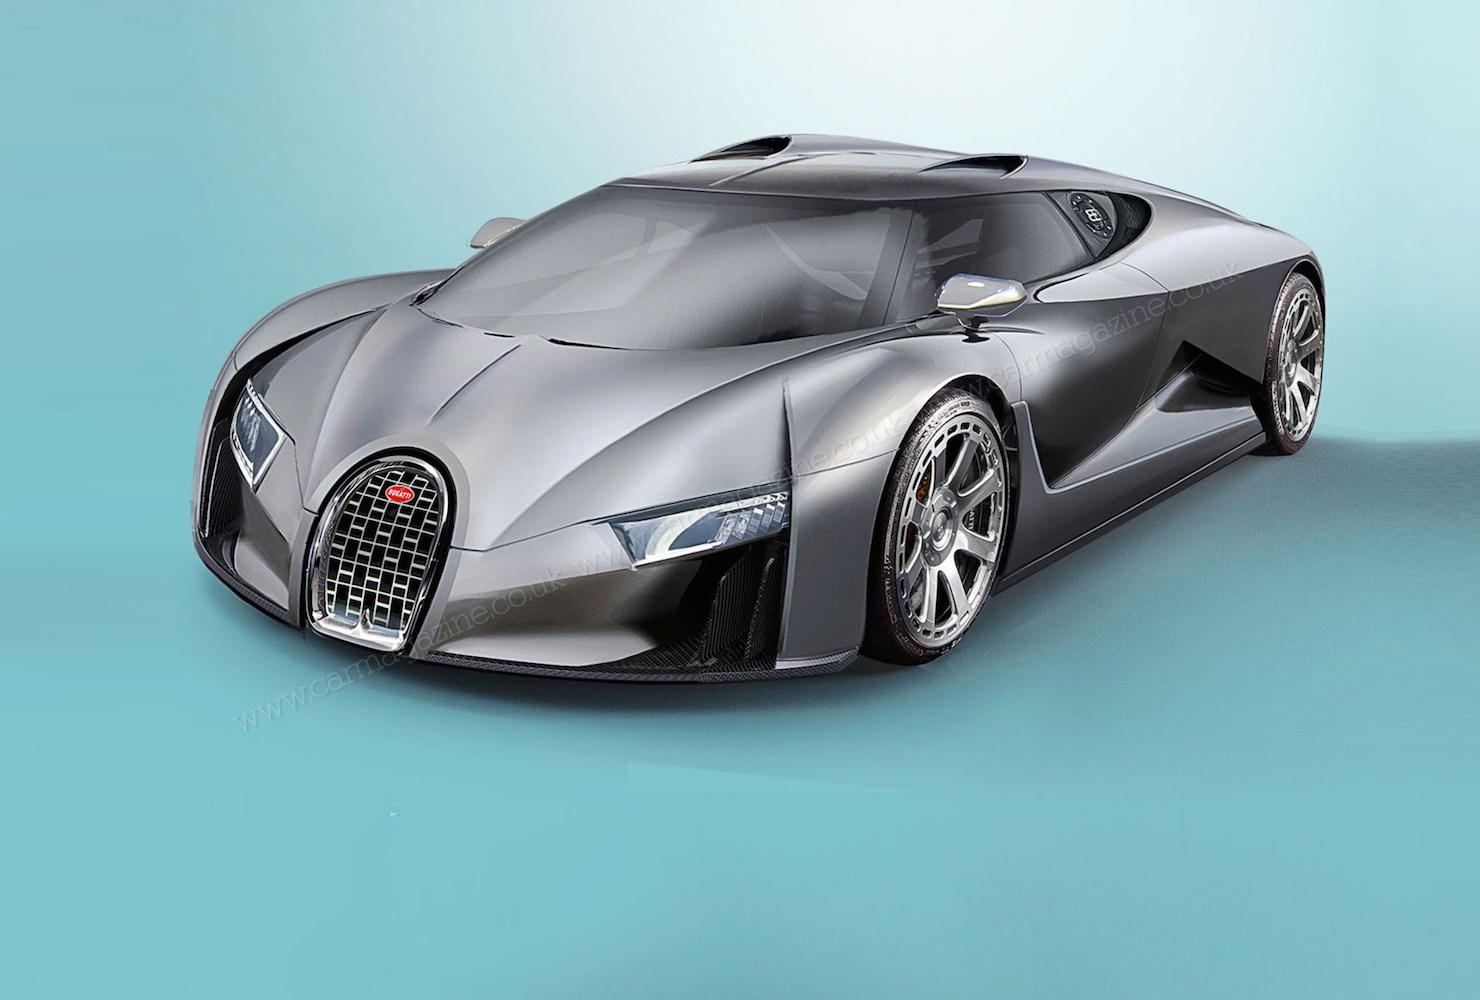 bugatti veyron successor performance specs news rumors digital. Cars Review. Best American Auto & Cars Review